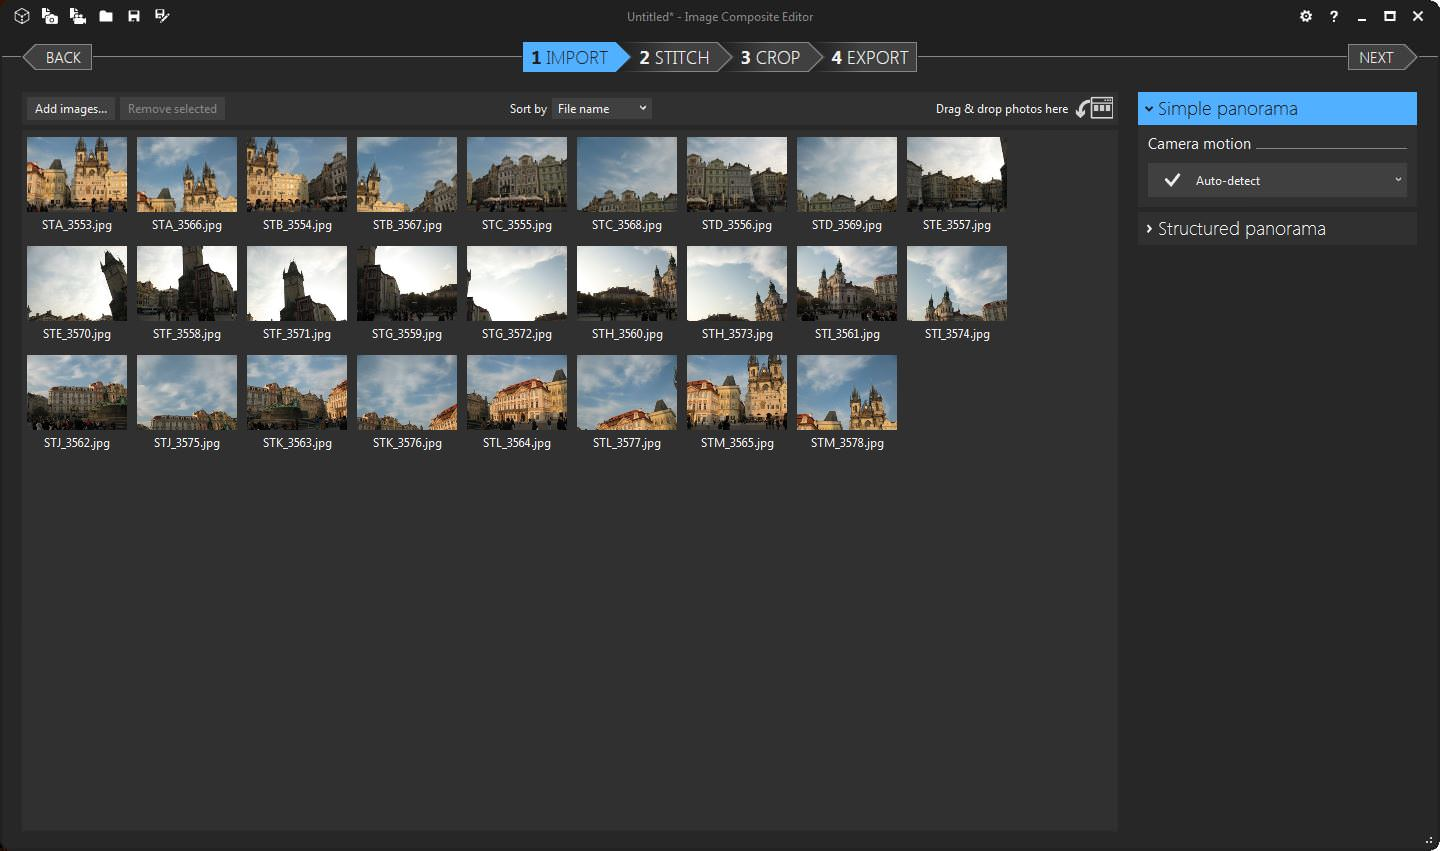 Stitching Images with Microsoft ICE